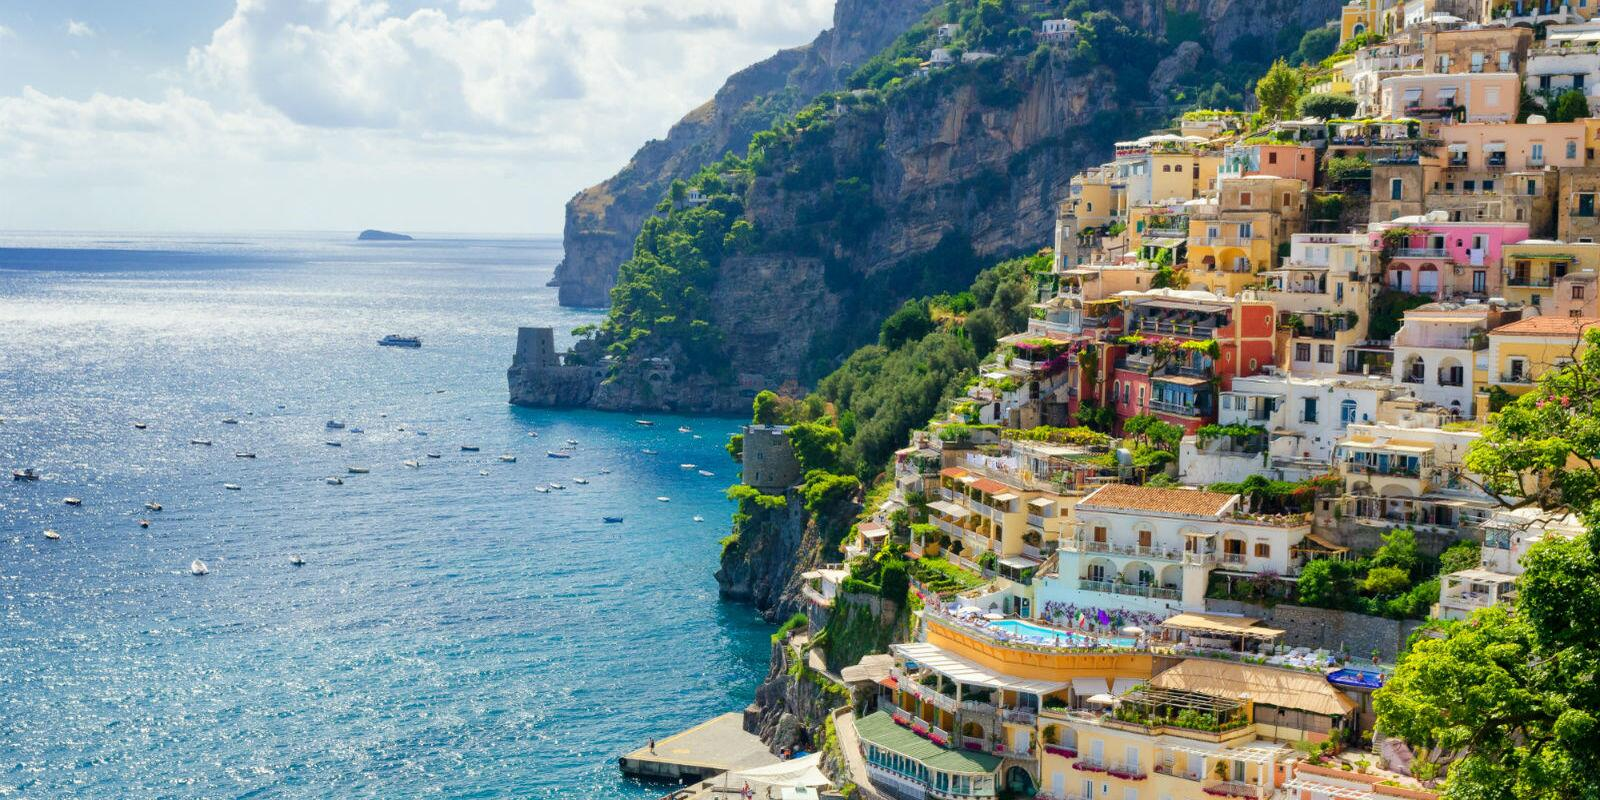 Amalfi, Positano and Capri: unmistakable colors and flavors! - All Inclusive